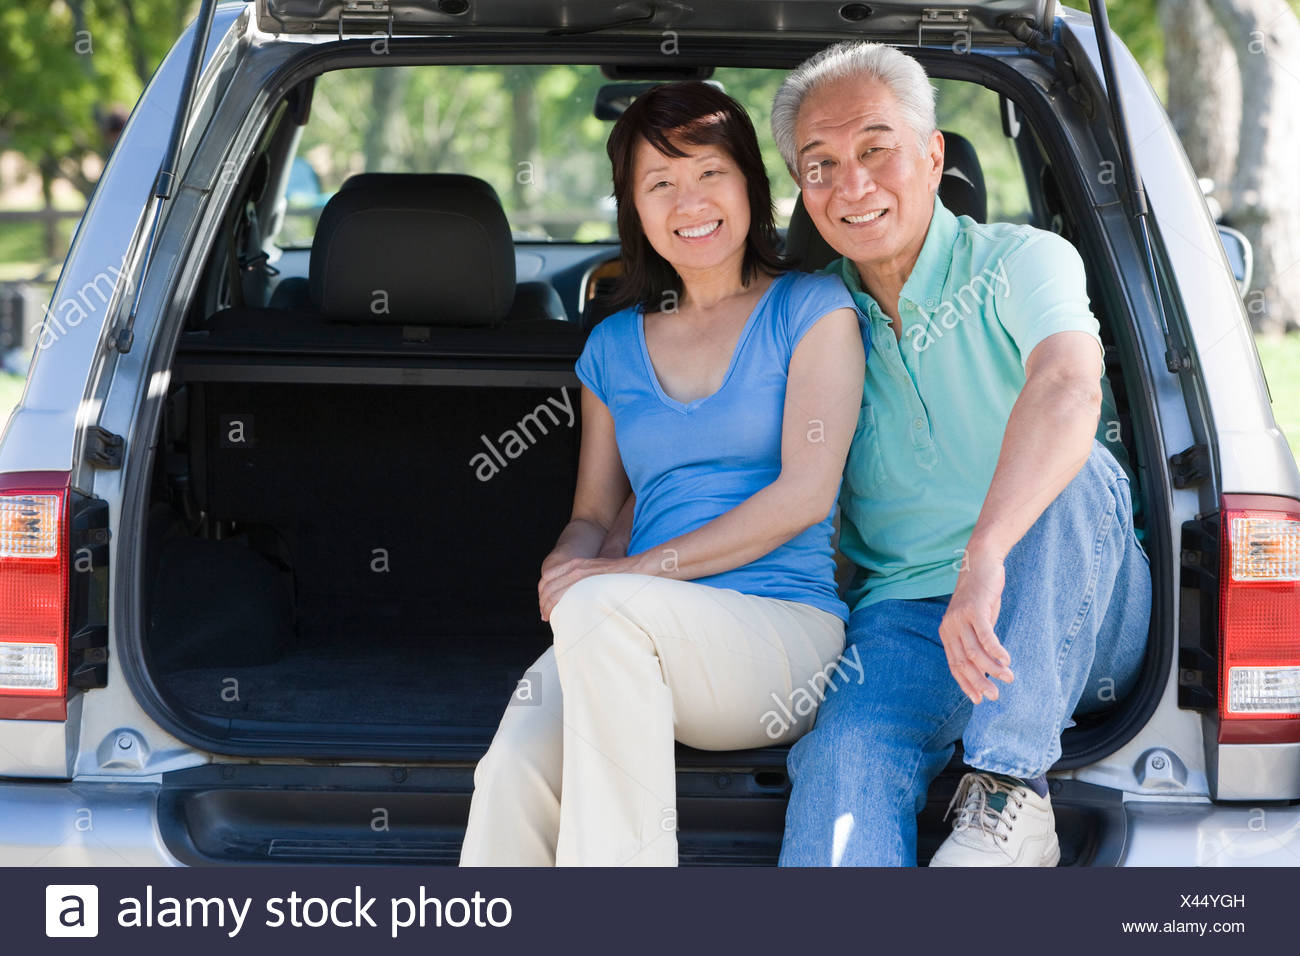 Couple sitting in back of van smiling - Stock Image